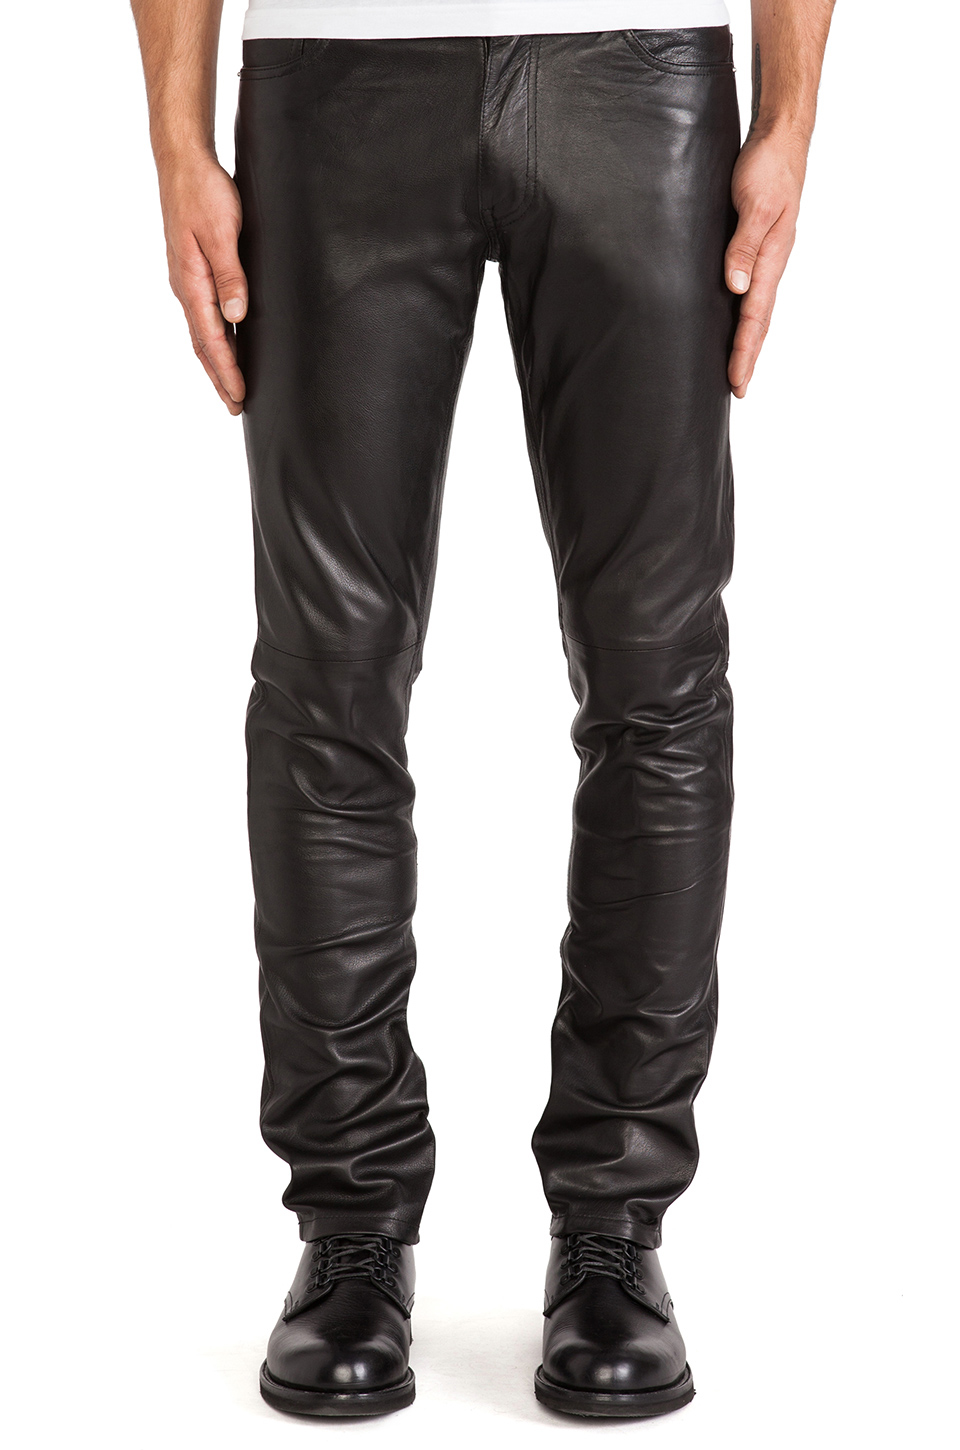 Go Trending with Pants by using Mens Leather Pants for your Casuals